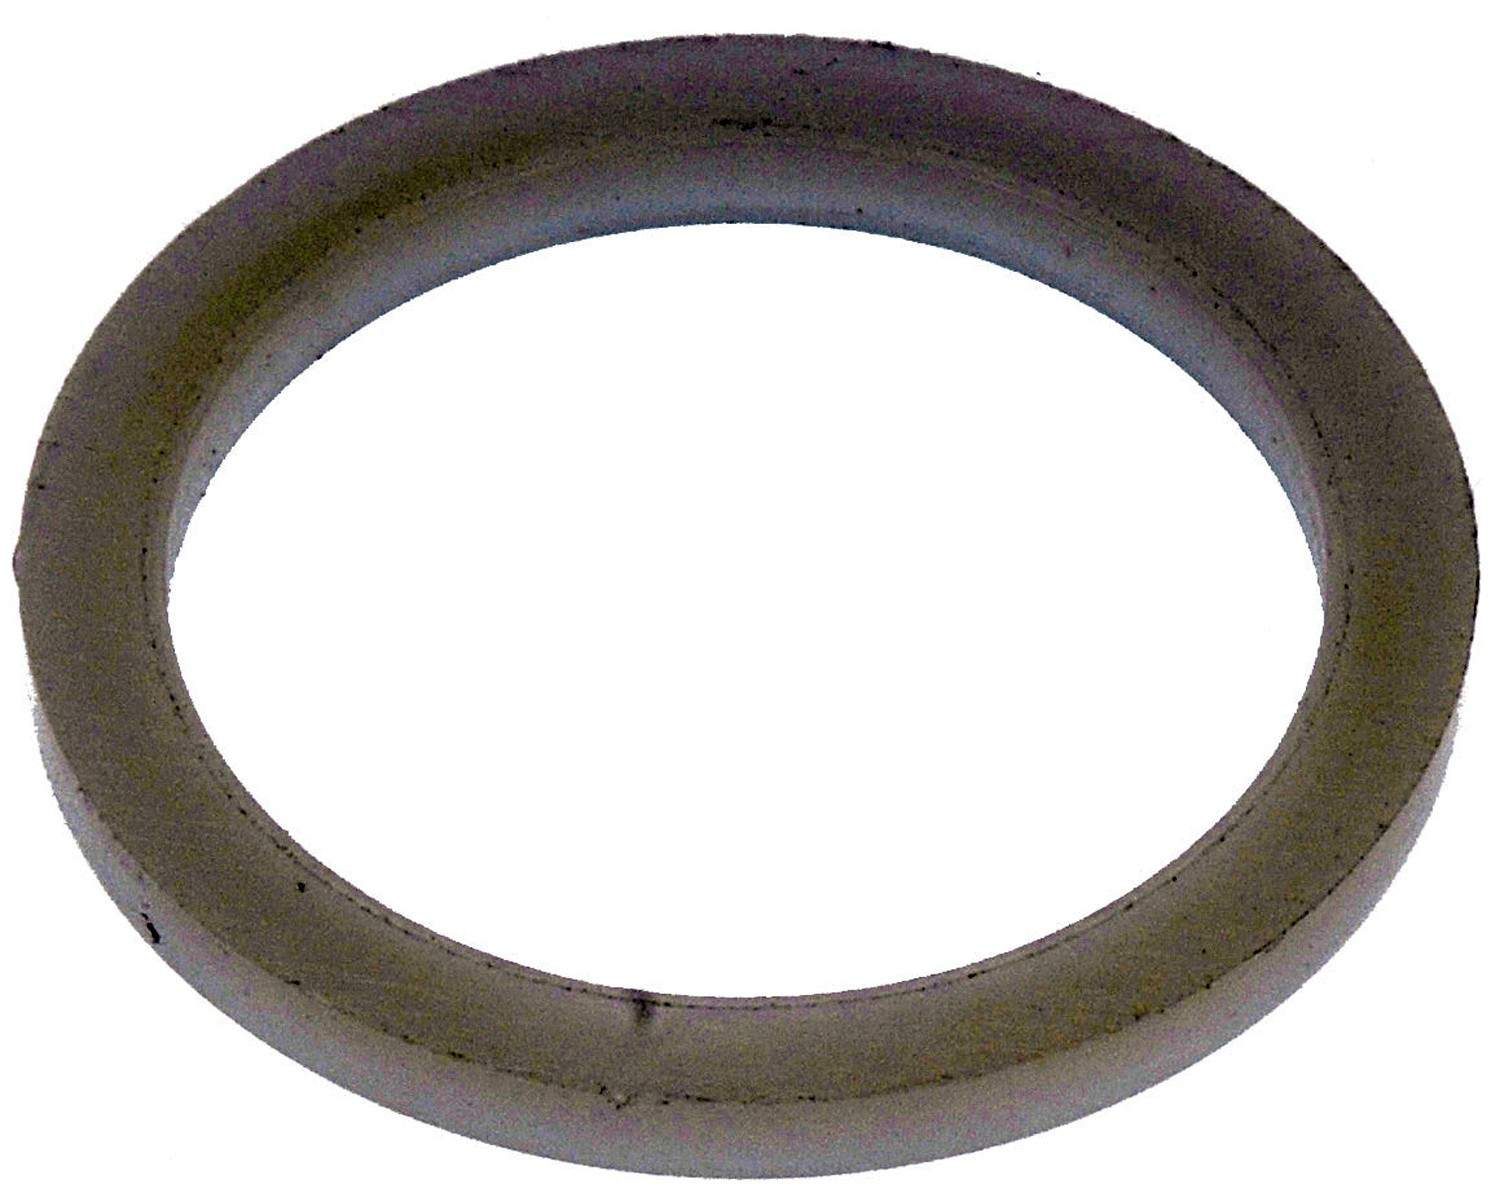 DORMAN - AUTOGRADE - Engine Oil Drain Plug Gasket - DOC 097-005